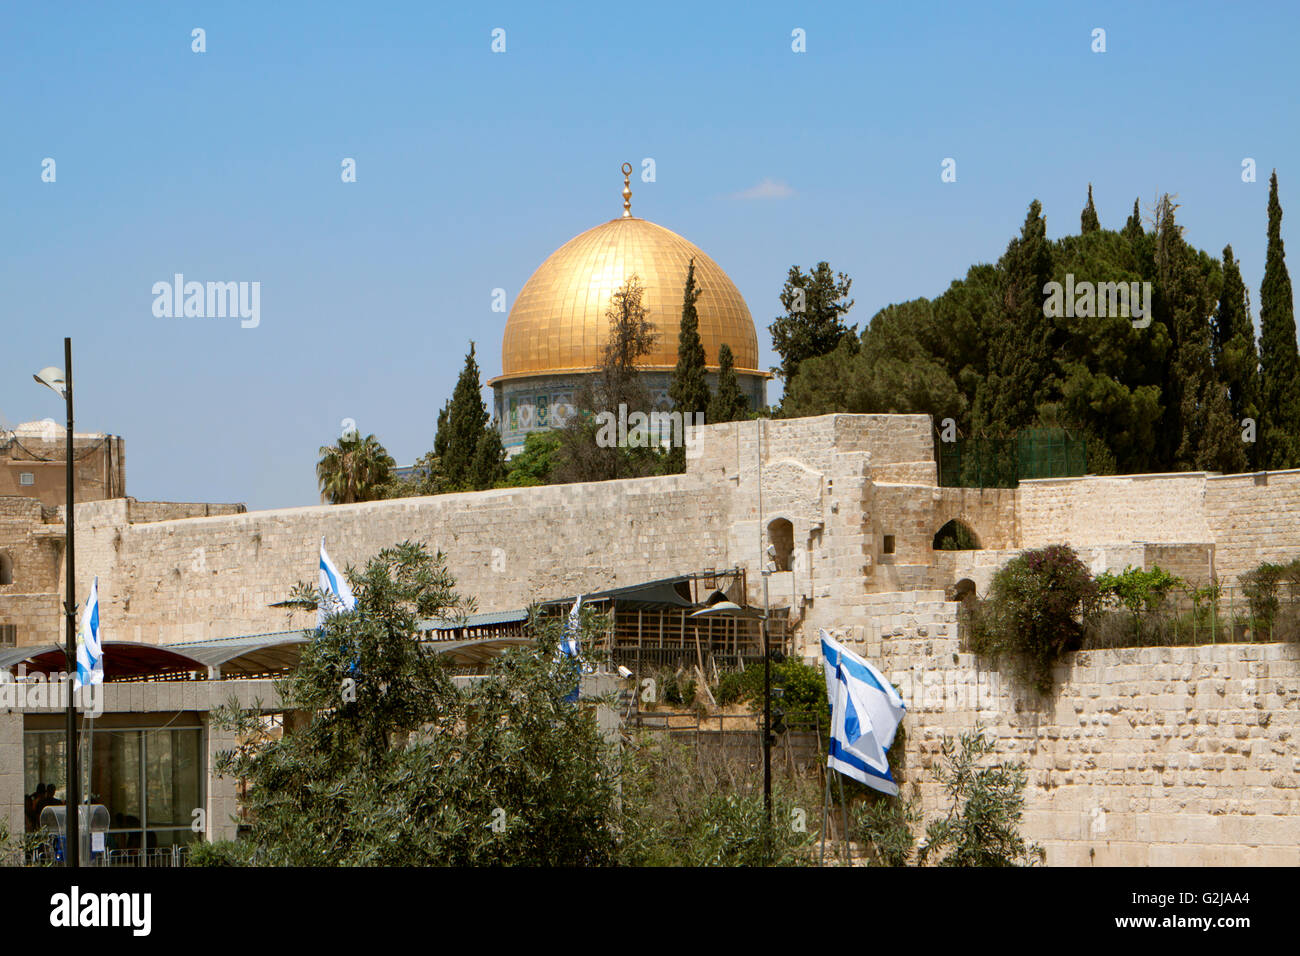 golden mosque on top of the wailing wall in jerusalem with israeli flags - Stock Image